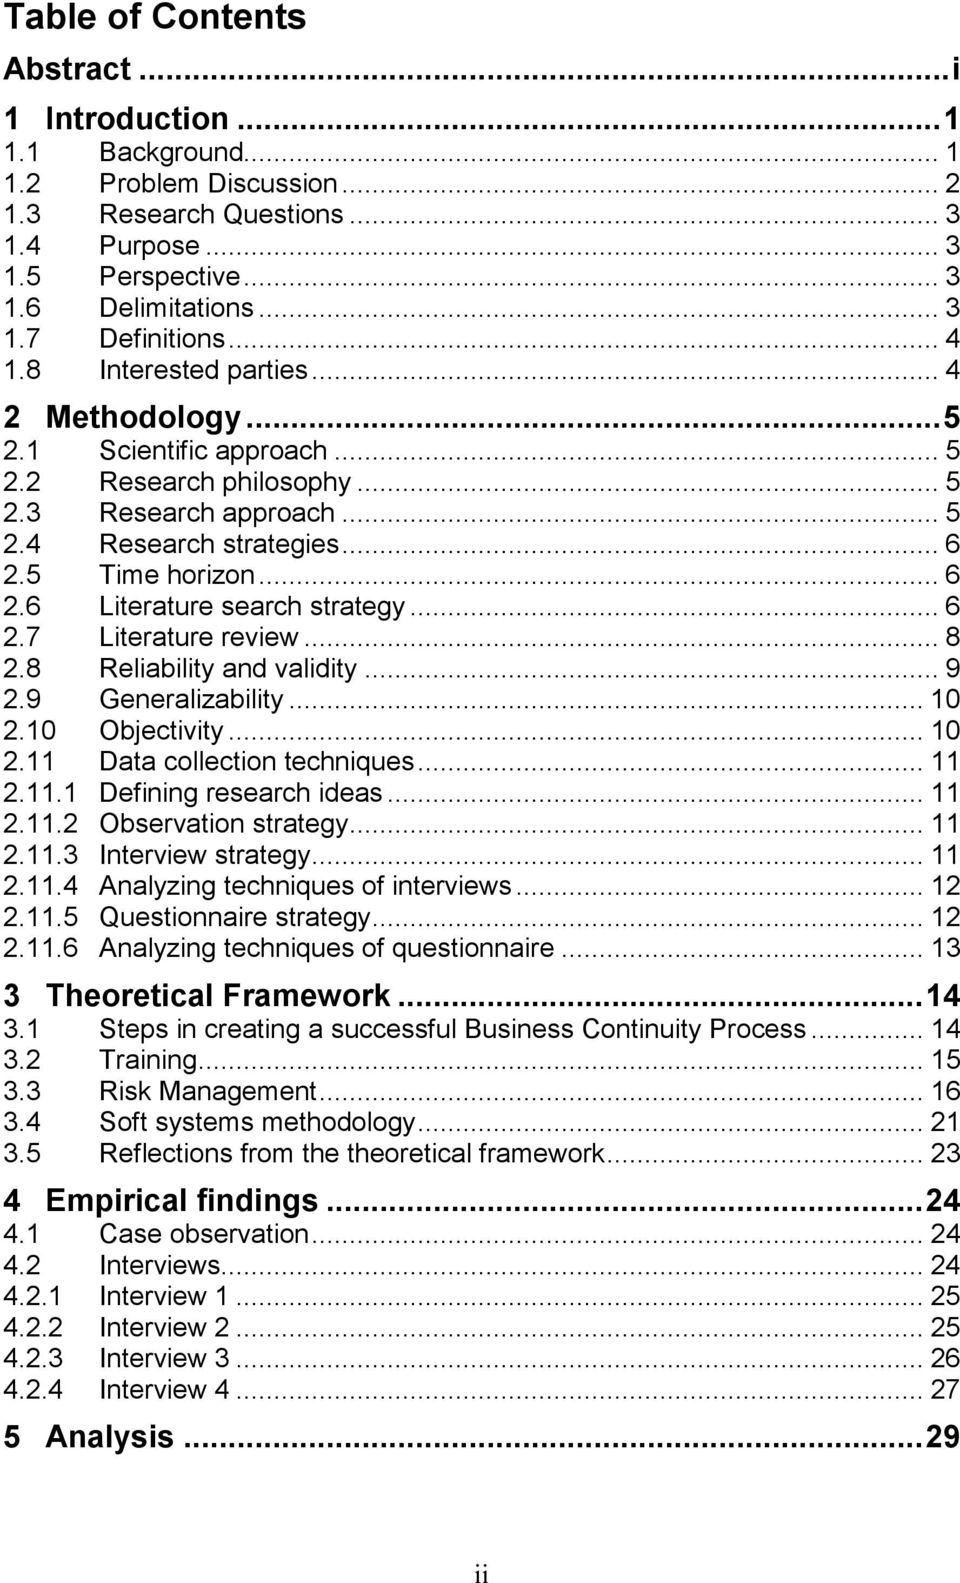 .. 6 2.7 Literature review... 8 2.8 Reliability and validity... 9 2.9 Generalizability... 10 2.10 Objectivity... 10 2.11 Data collection techniques... 11 2.11.1 Defining research ideas... 11 2.11.2 Observation strategy.